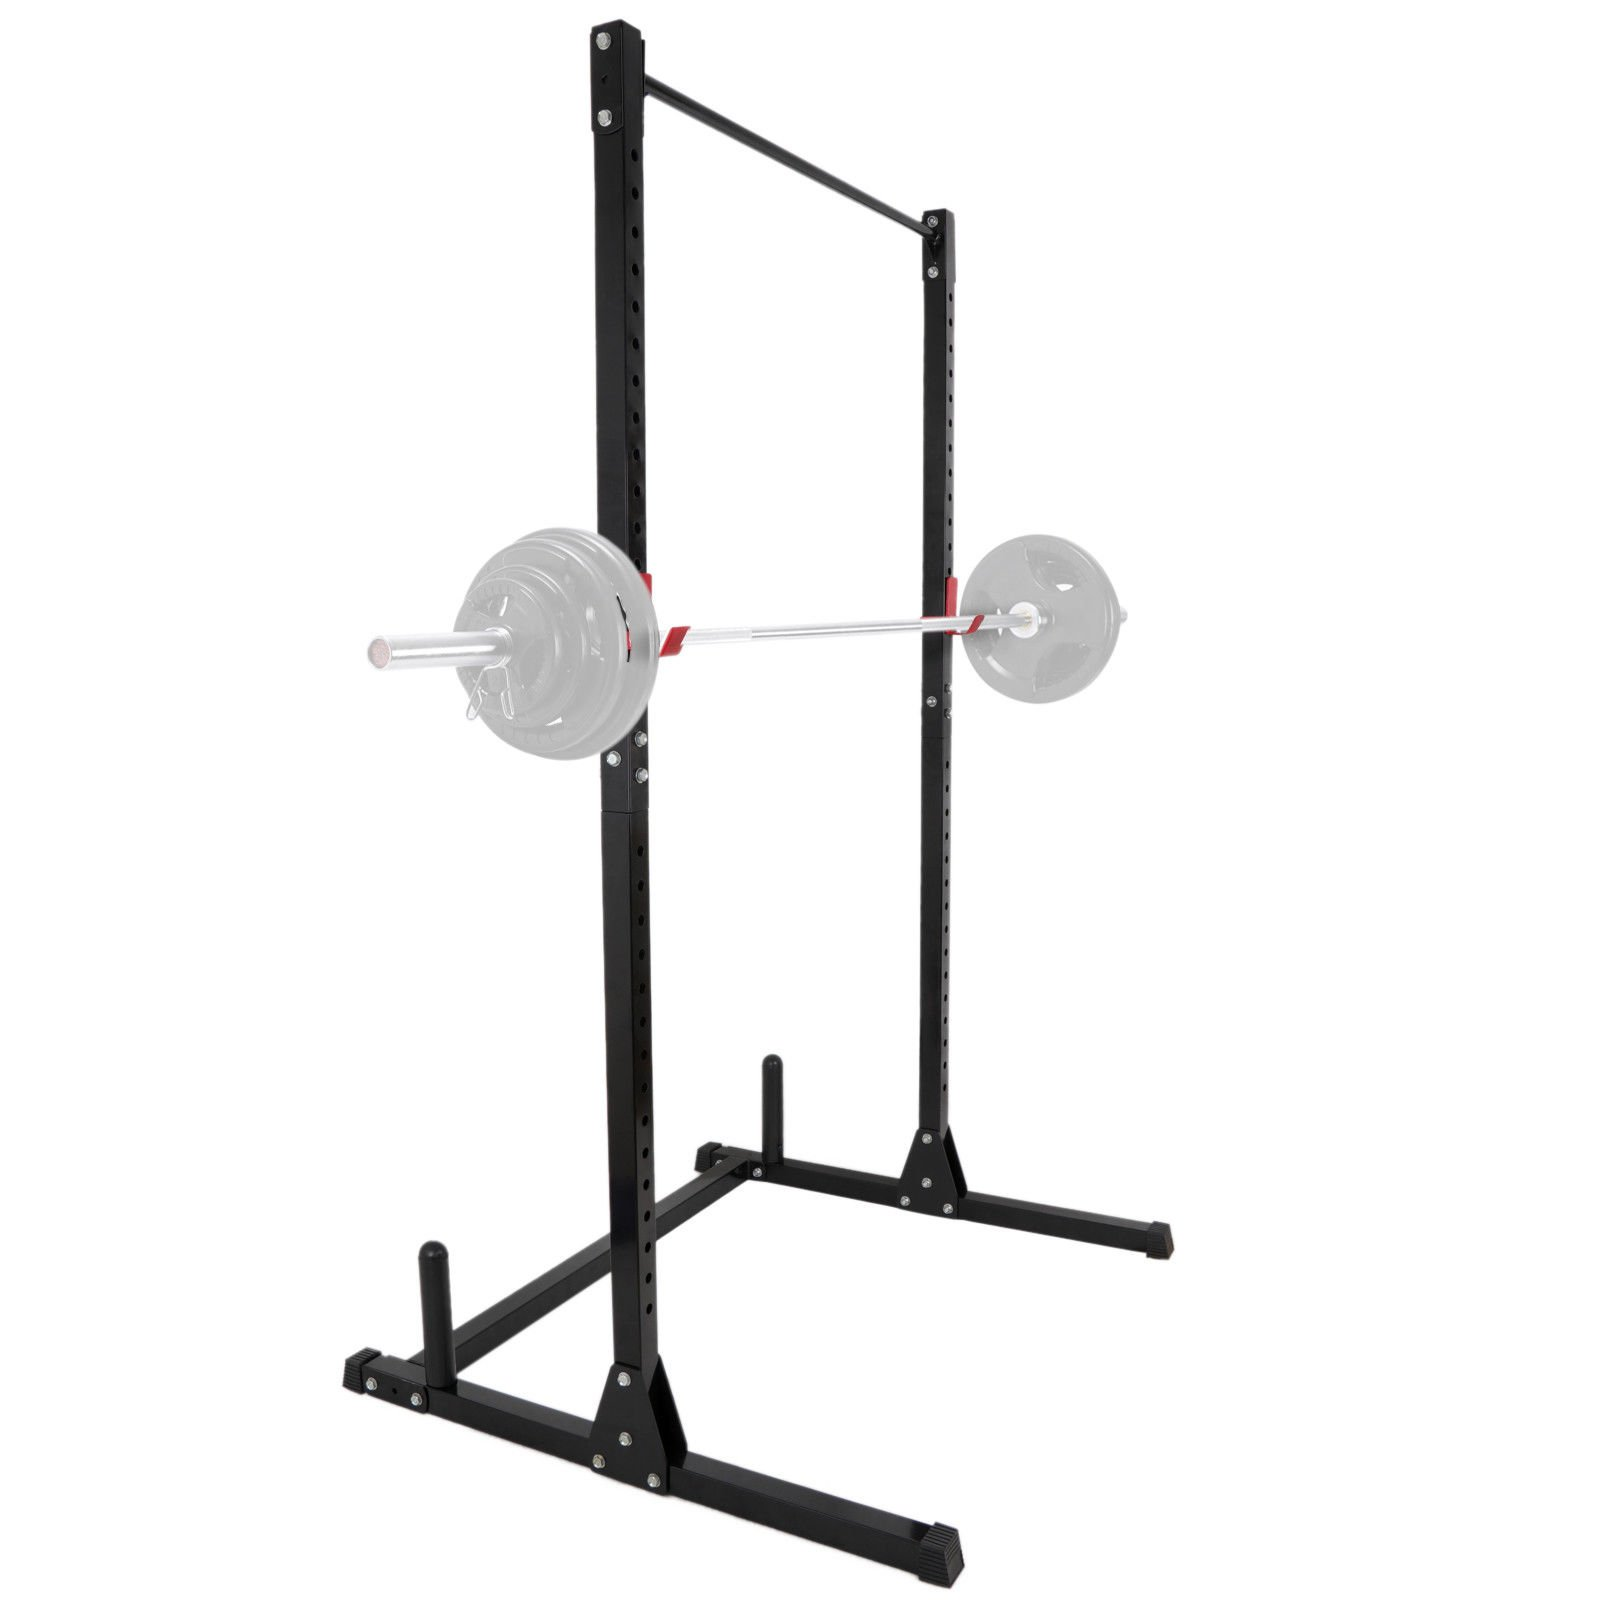 nitipezzo Strength and Stability Multi-Function Weightlifting, Squats, Dead Lifts, Curls, etc.Home Stand Black